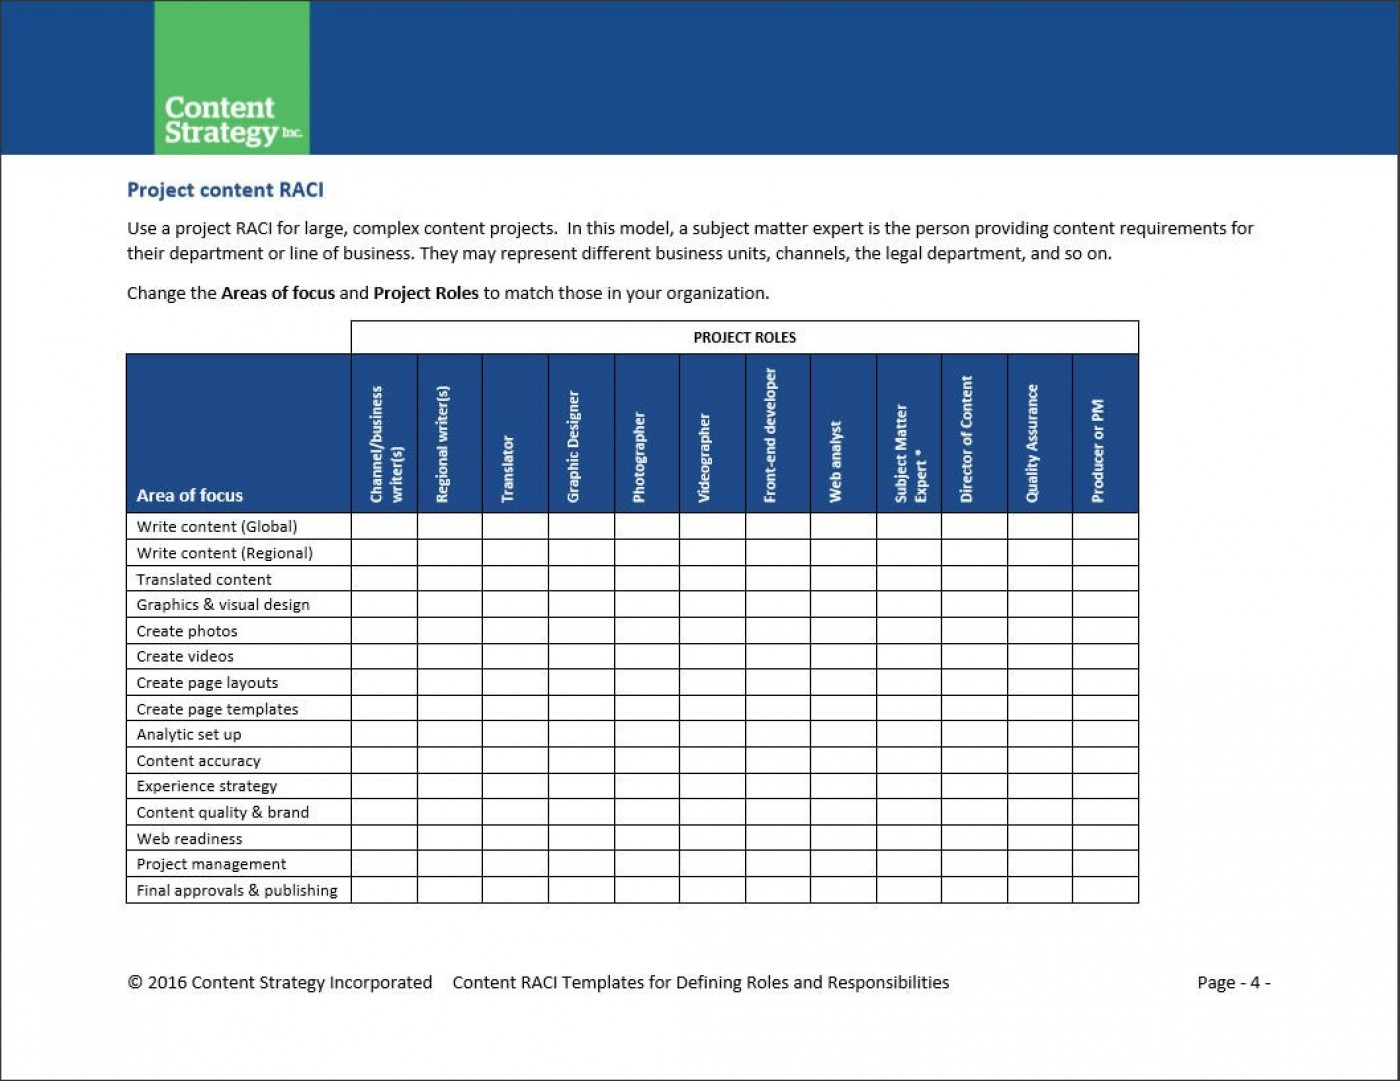 006 Excellent Role And Responsibilitie Template High Resolution  Project Management Word Team Excel1400